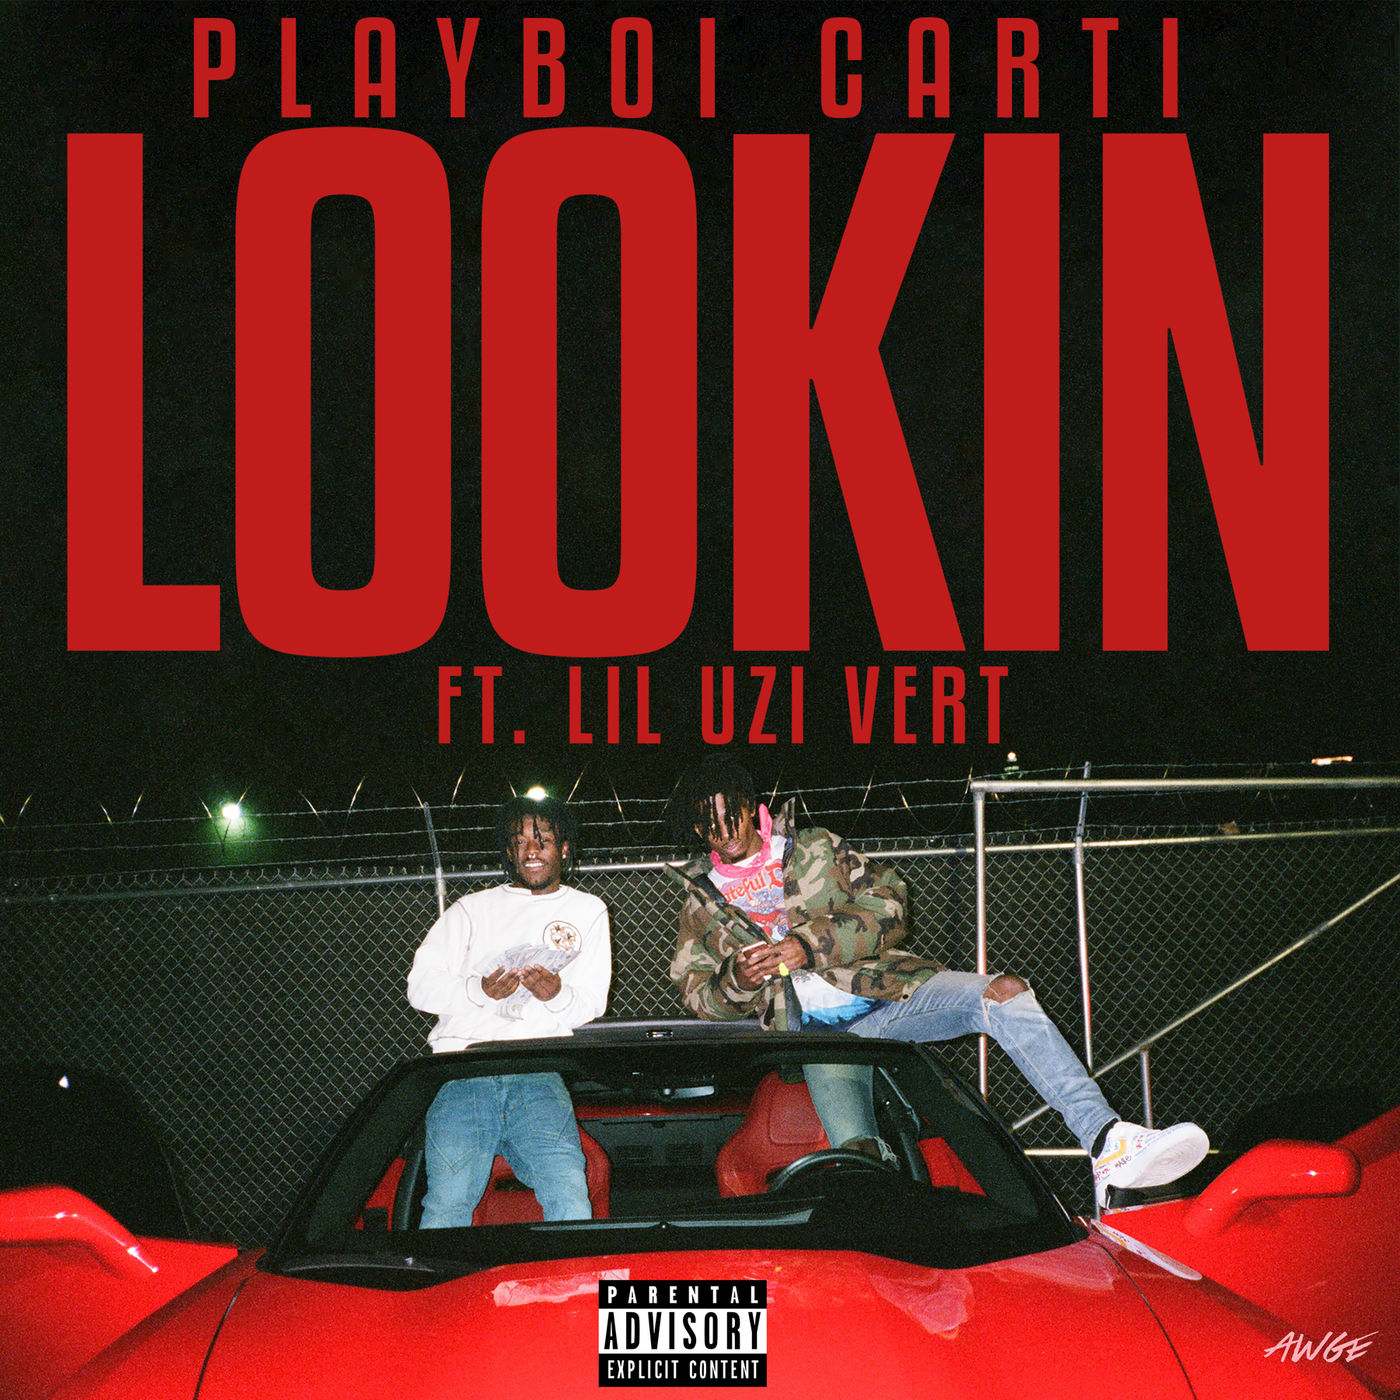 Playboi Carti - Lookin (feat. Lil Uzi Vert) - Single Cover